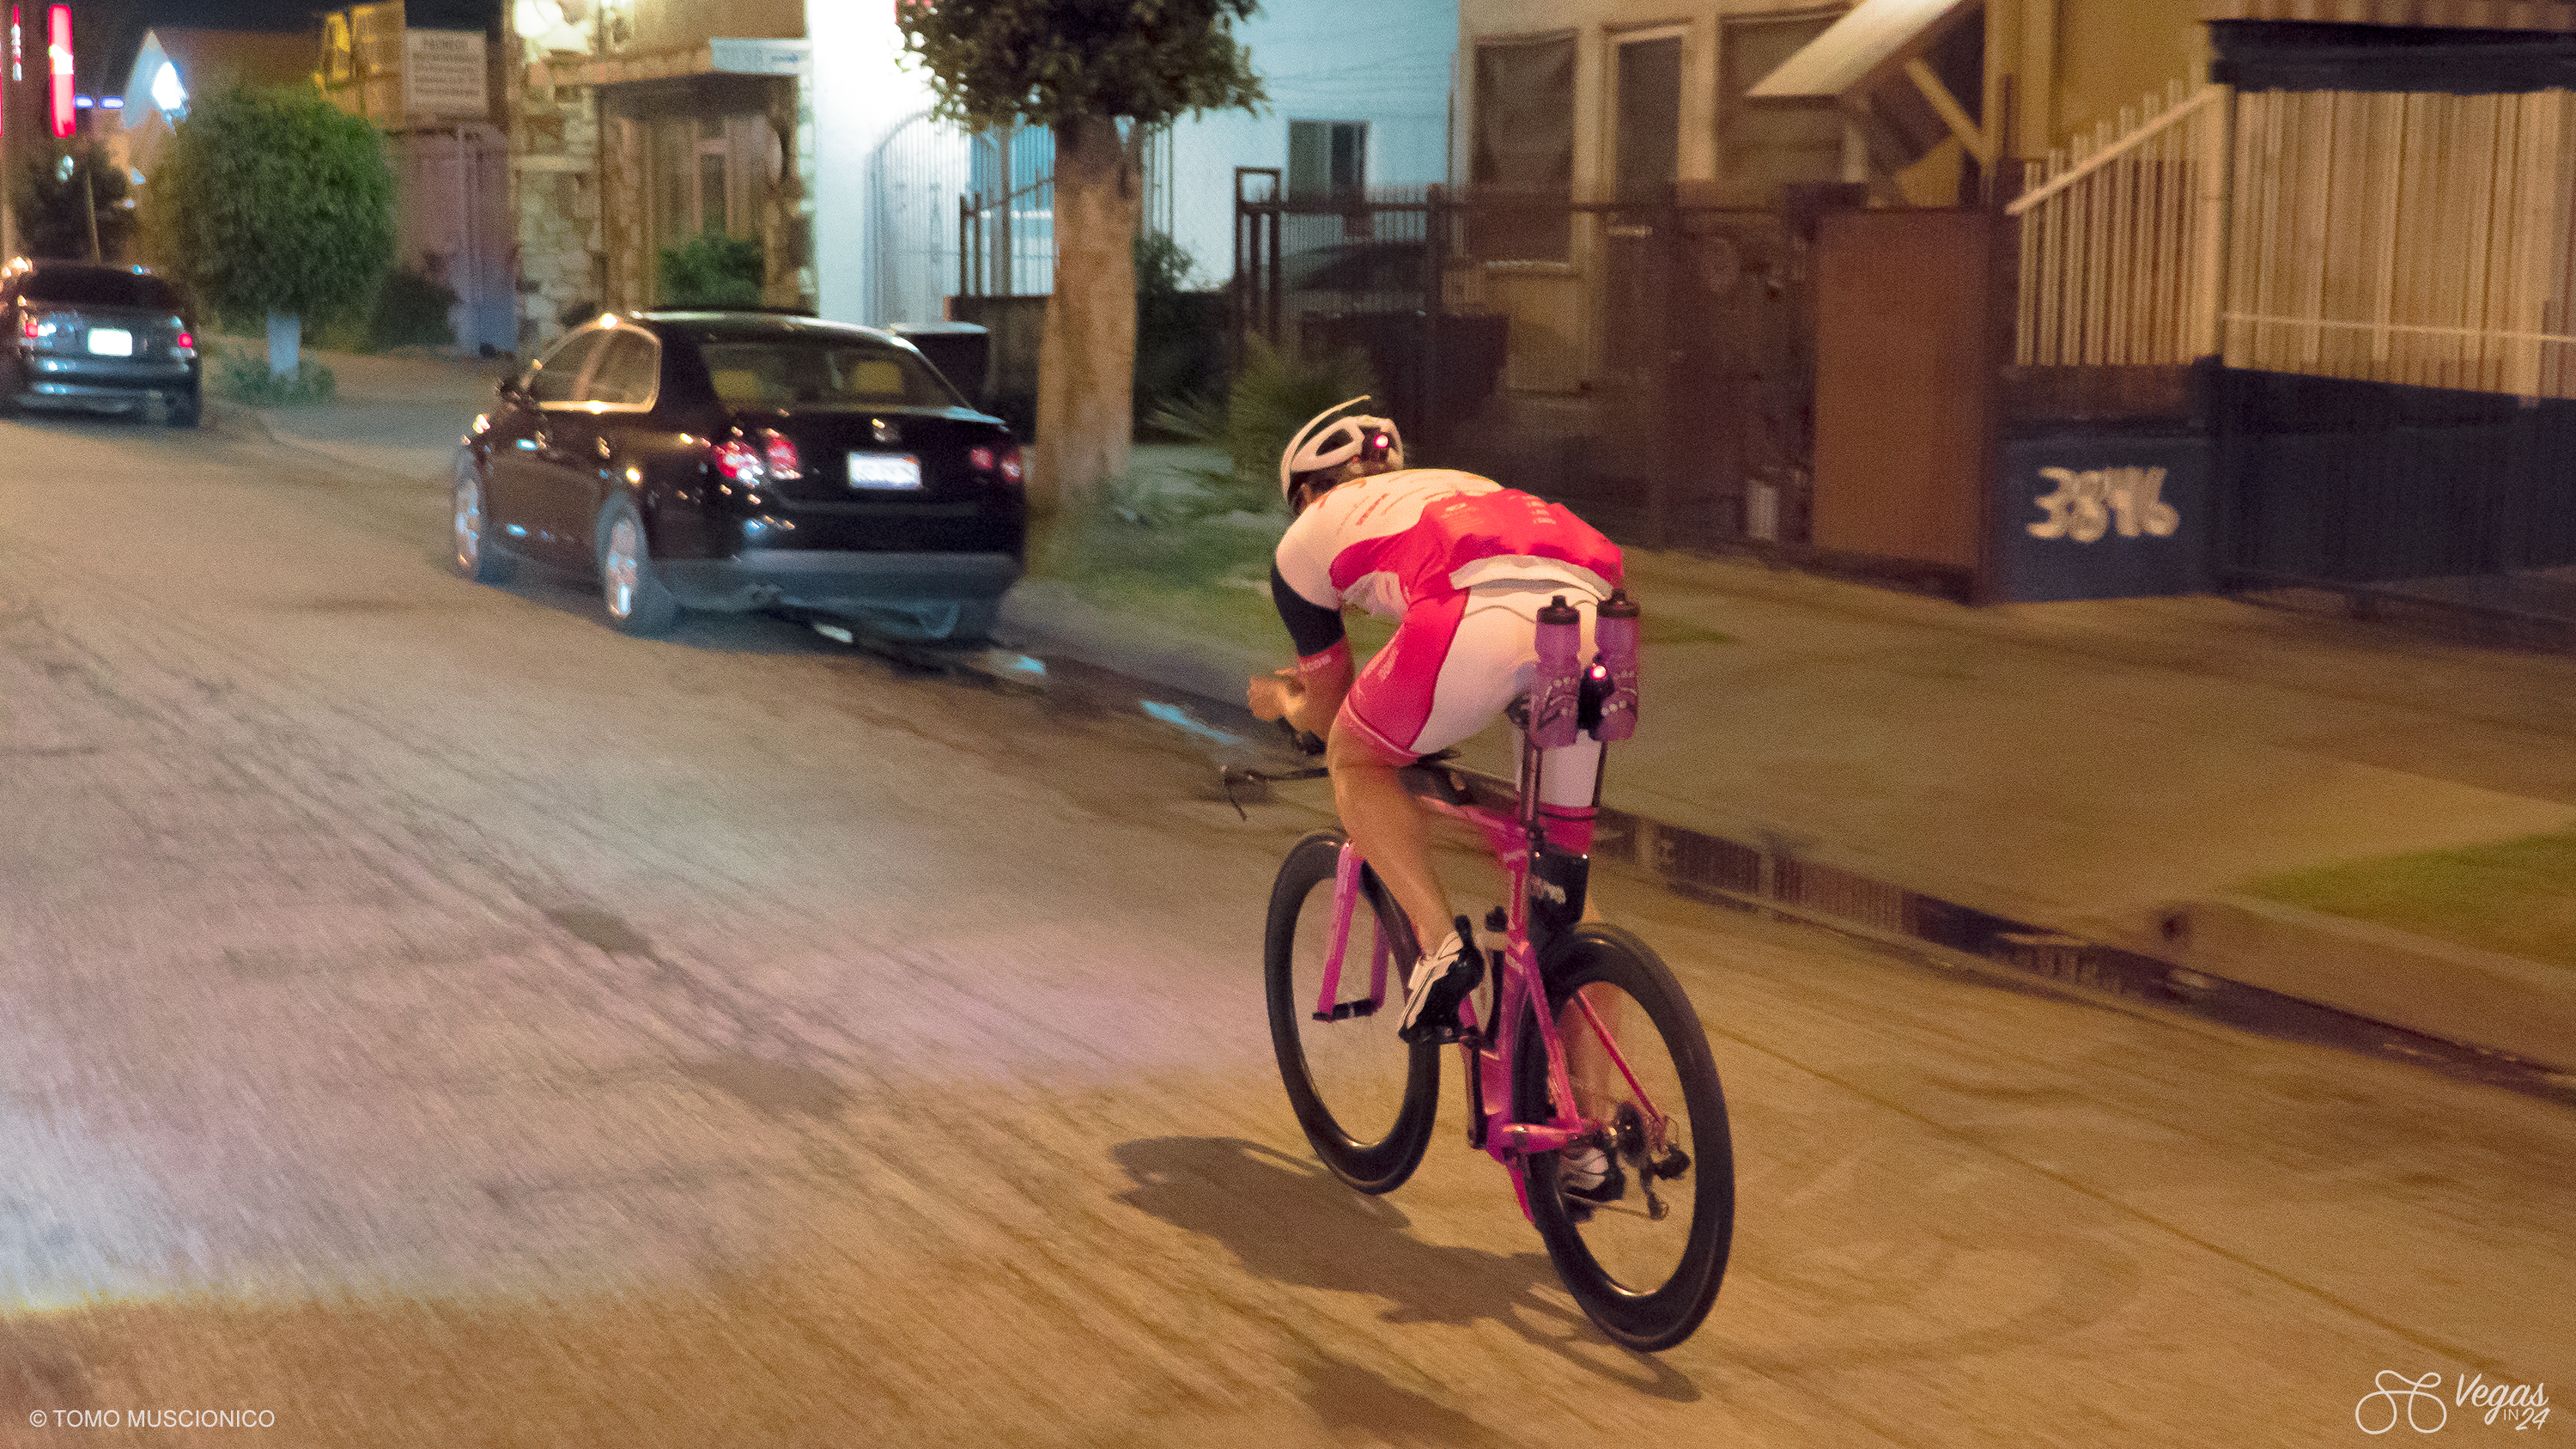 Less than an hour into Andy Funk's record setting ride, the homes and businesses along these Los Angeles neighborhoods are barricaded with bars and gates.